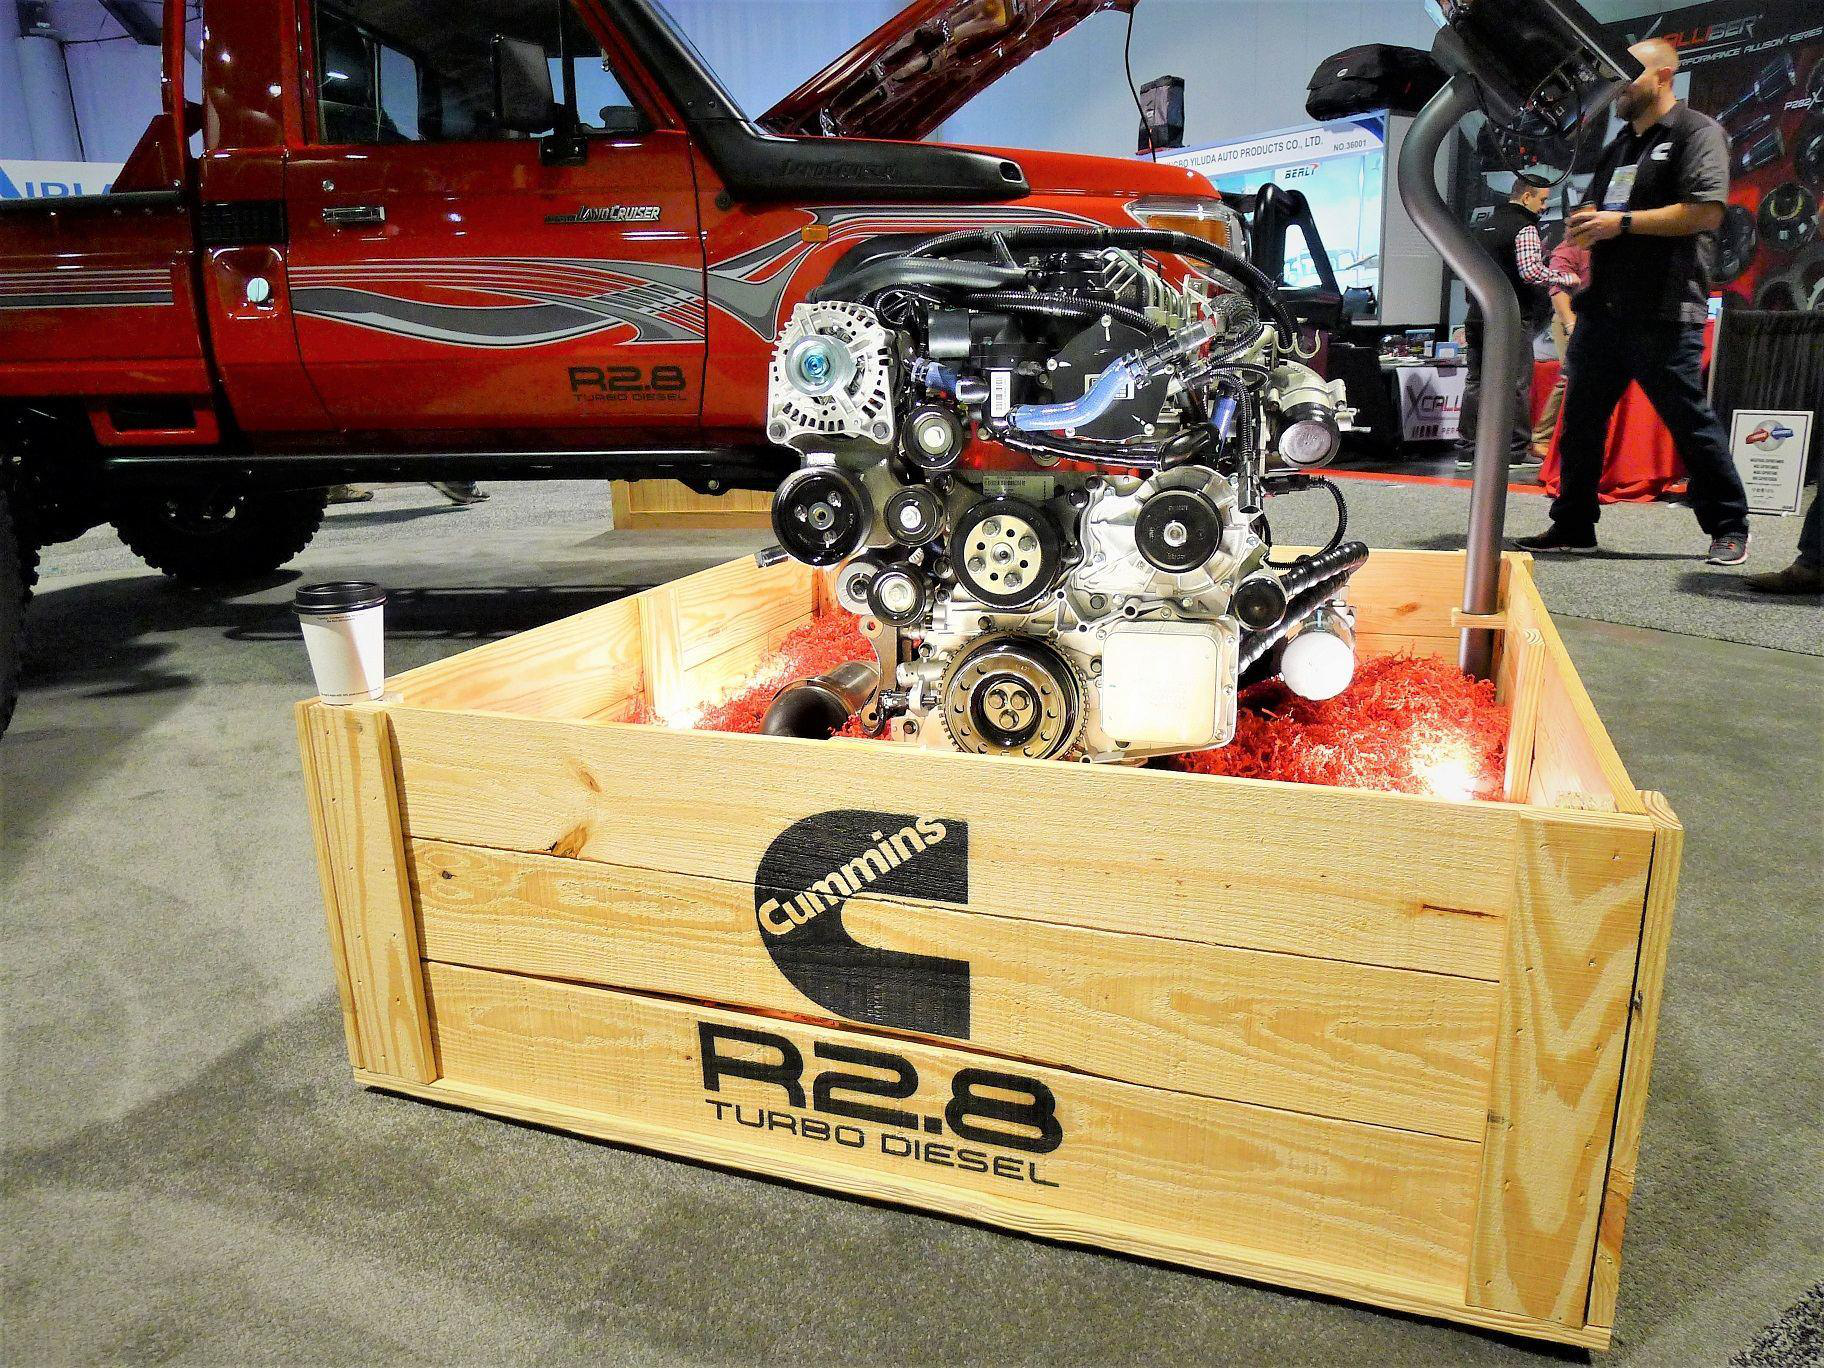 Cummins unveils its first crate engine the R2 8 Turbo Diesel